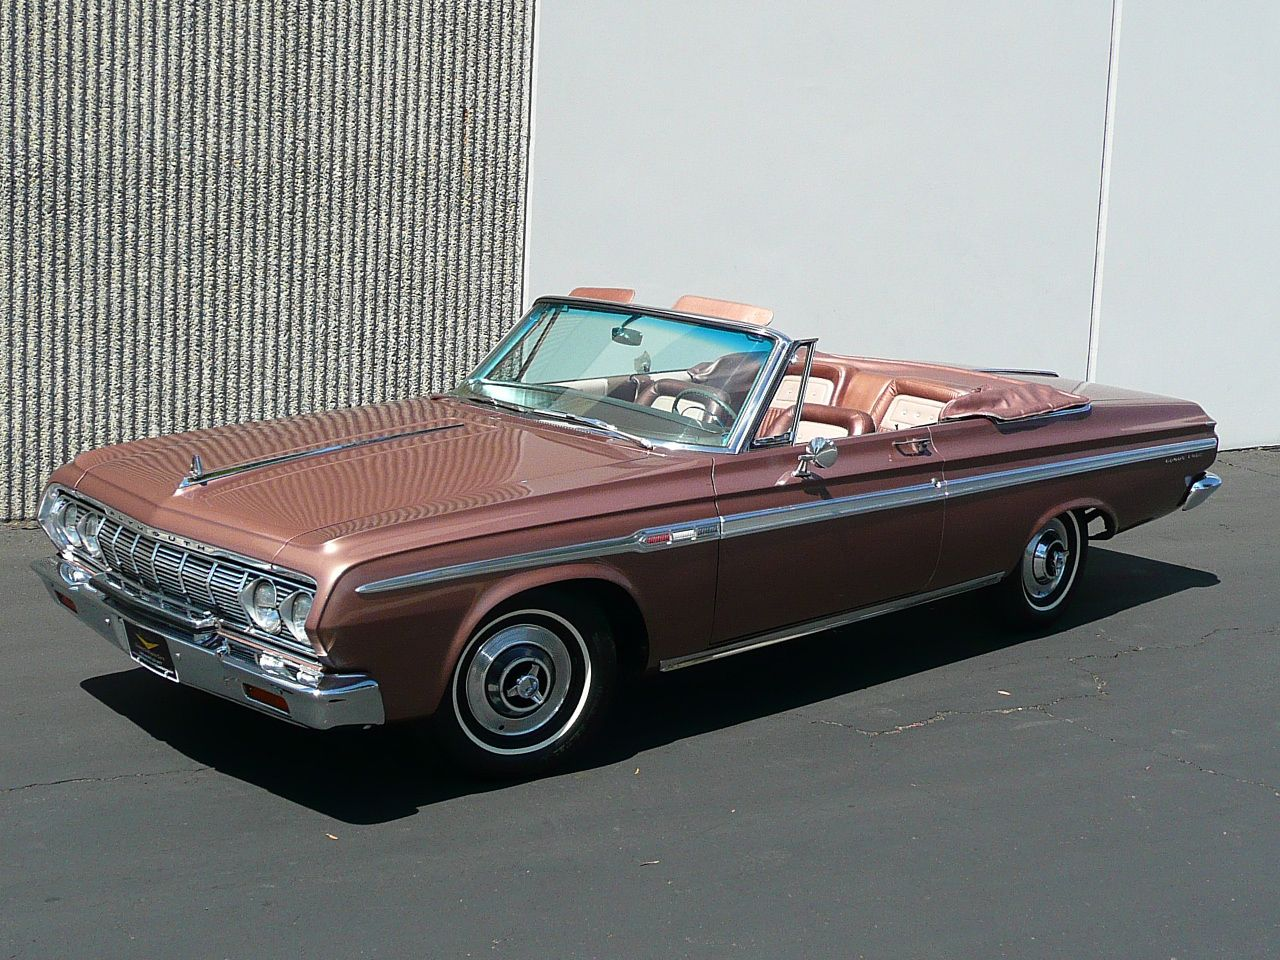 1964 PLYMOUTH SPORT FURY CONVERTIBLE Chevy sports cars